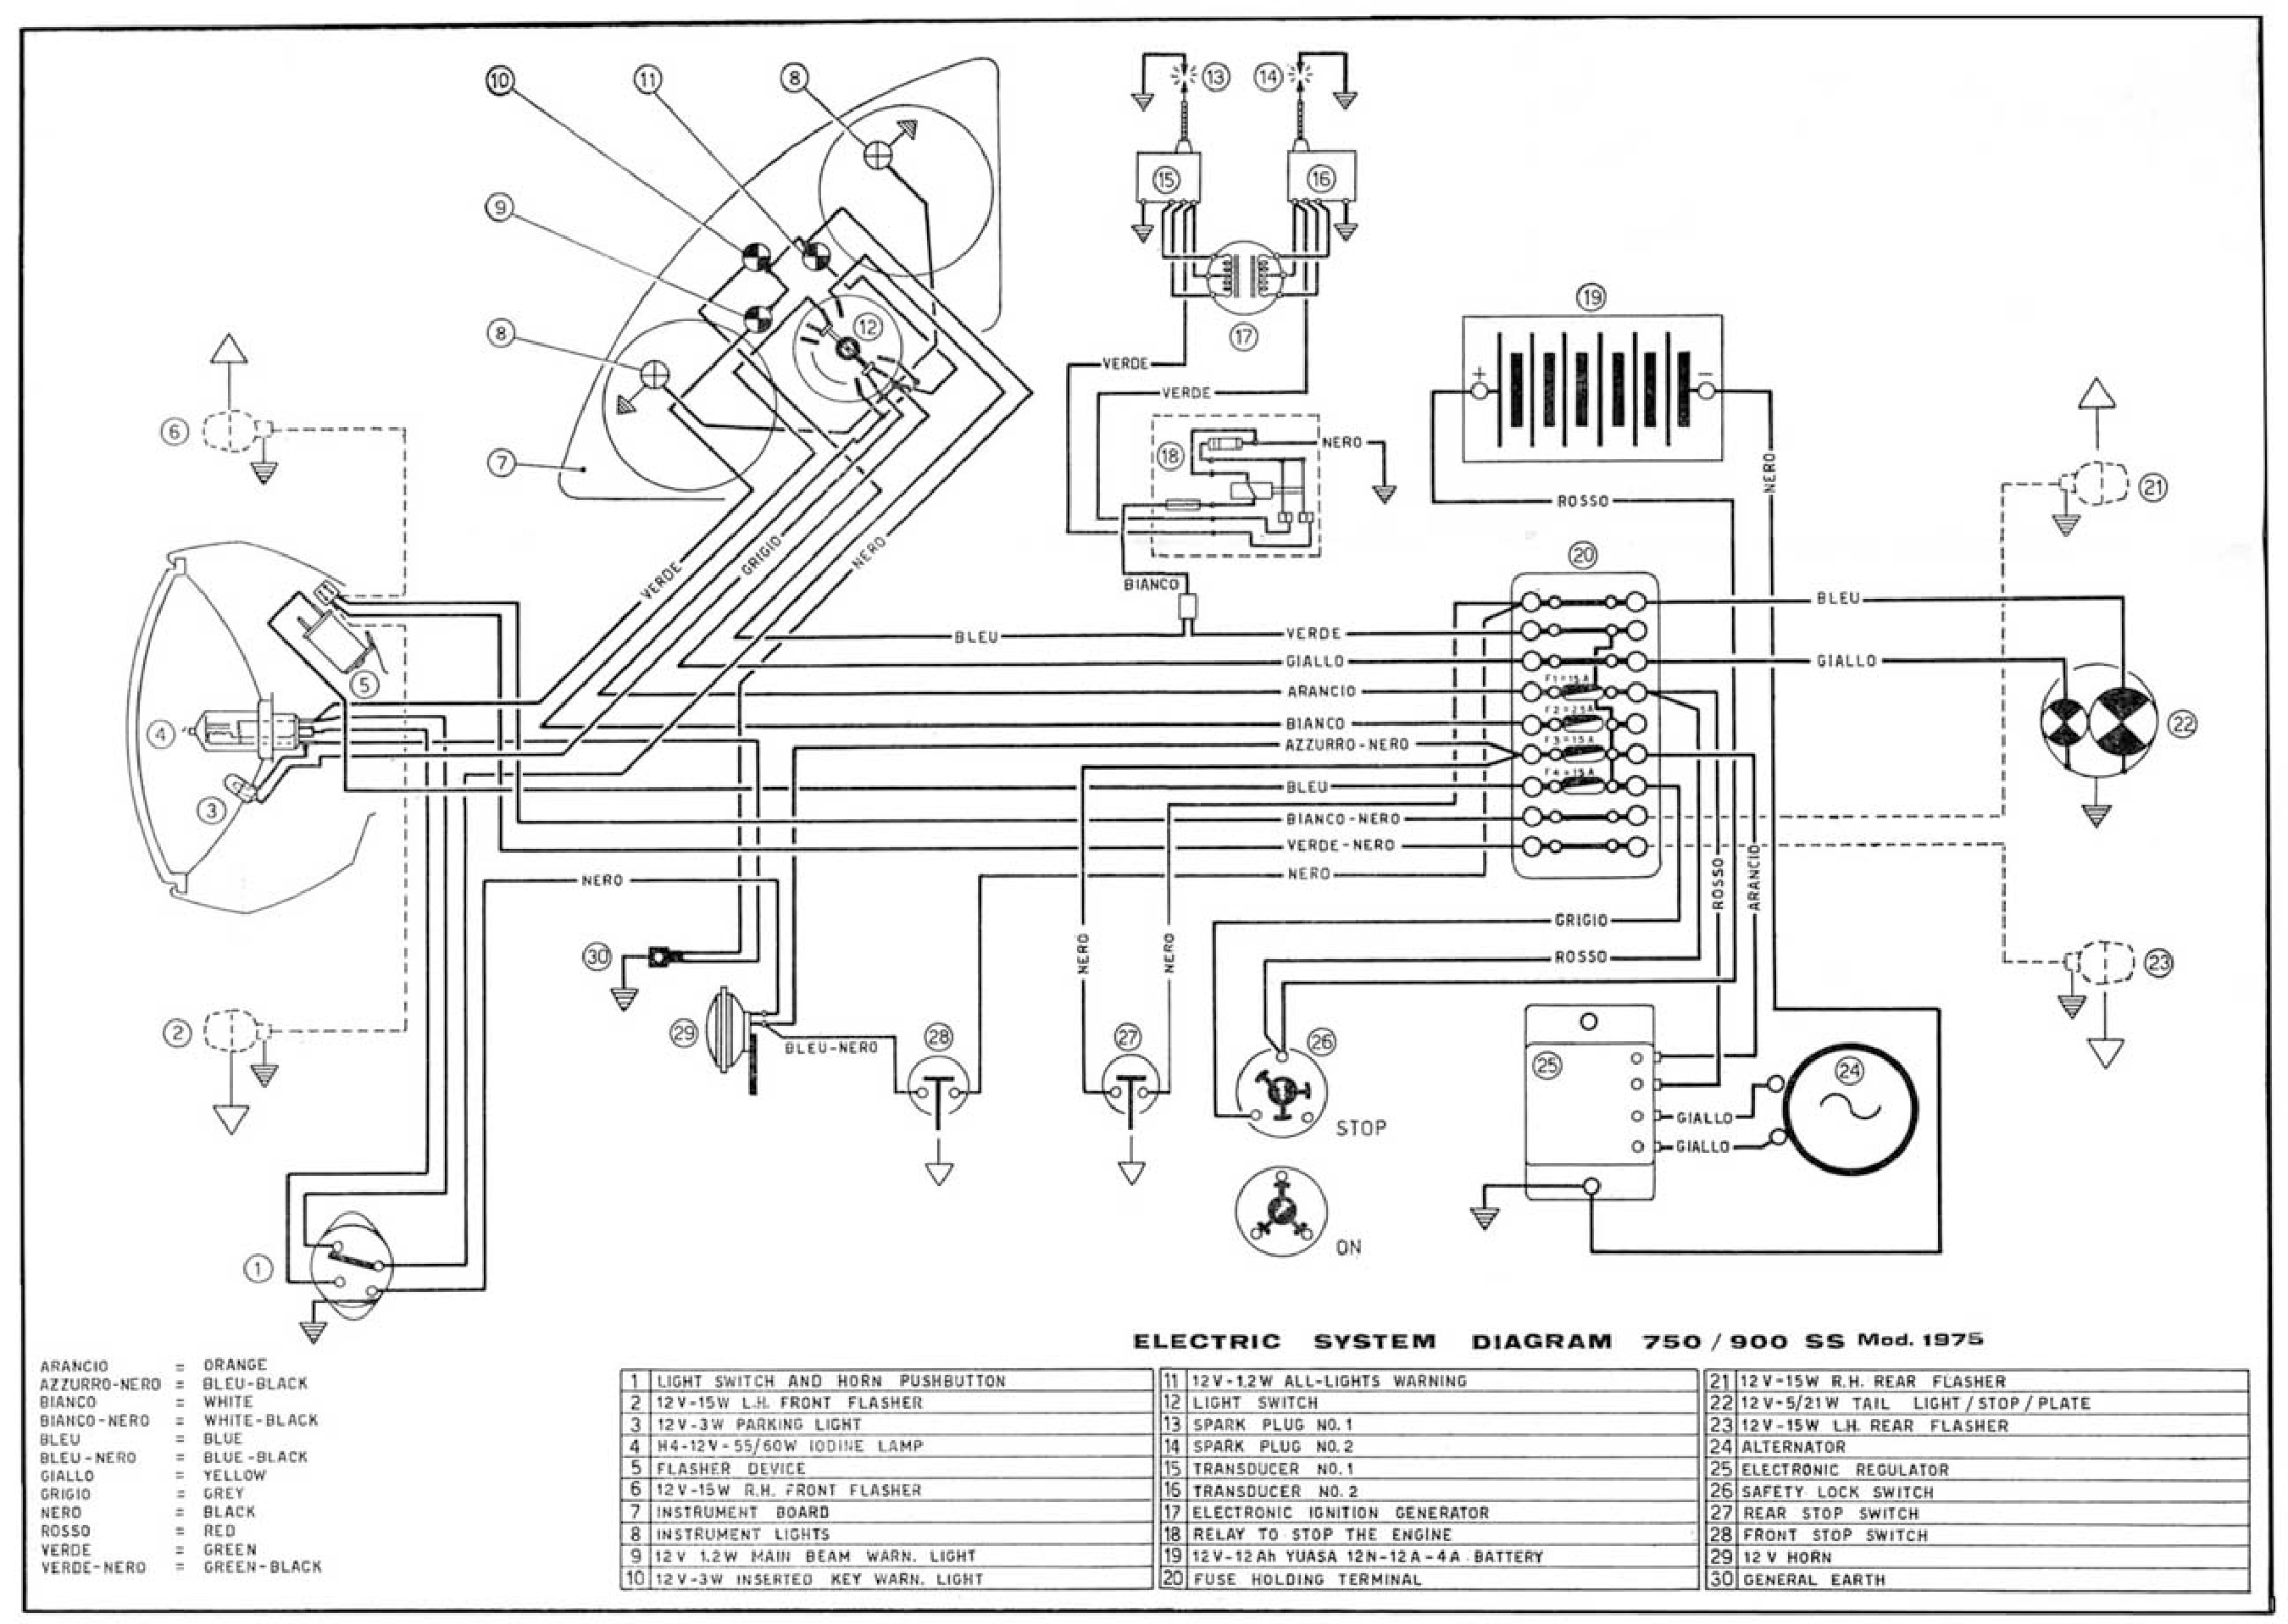 Ducati 750 900 SS 1975 Schema electrica PDF Download